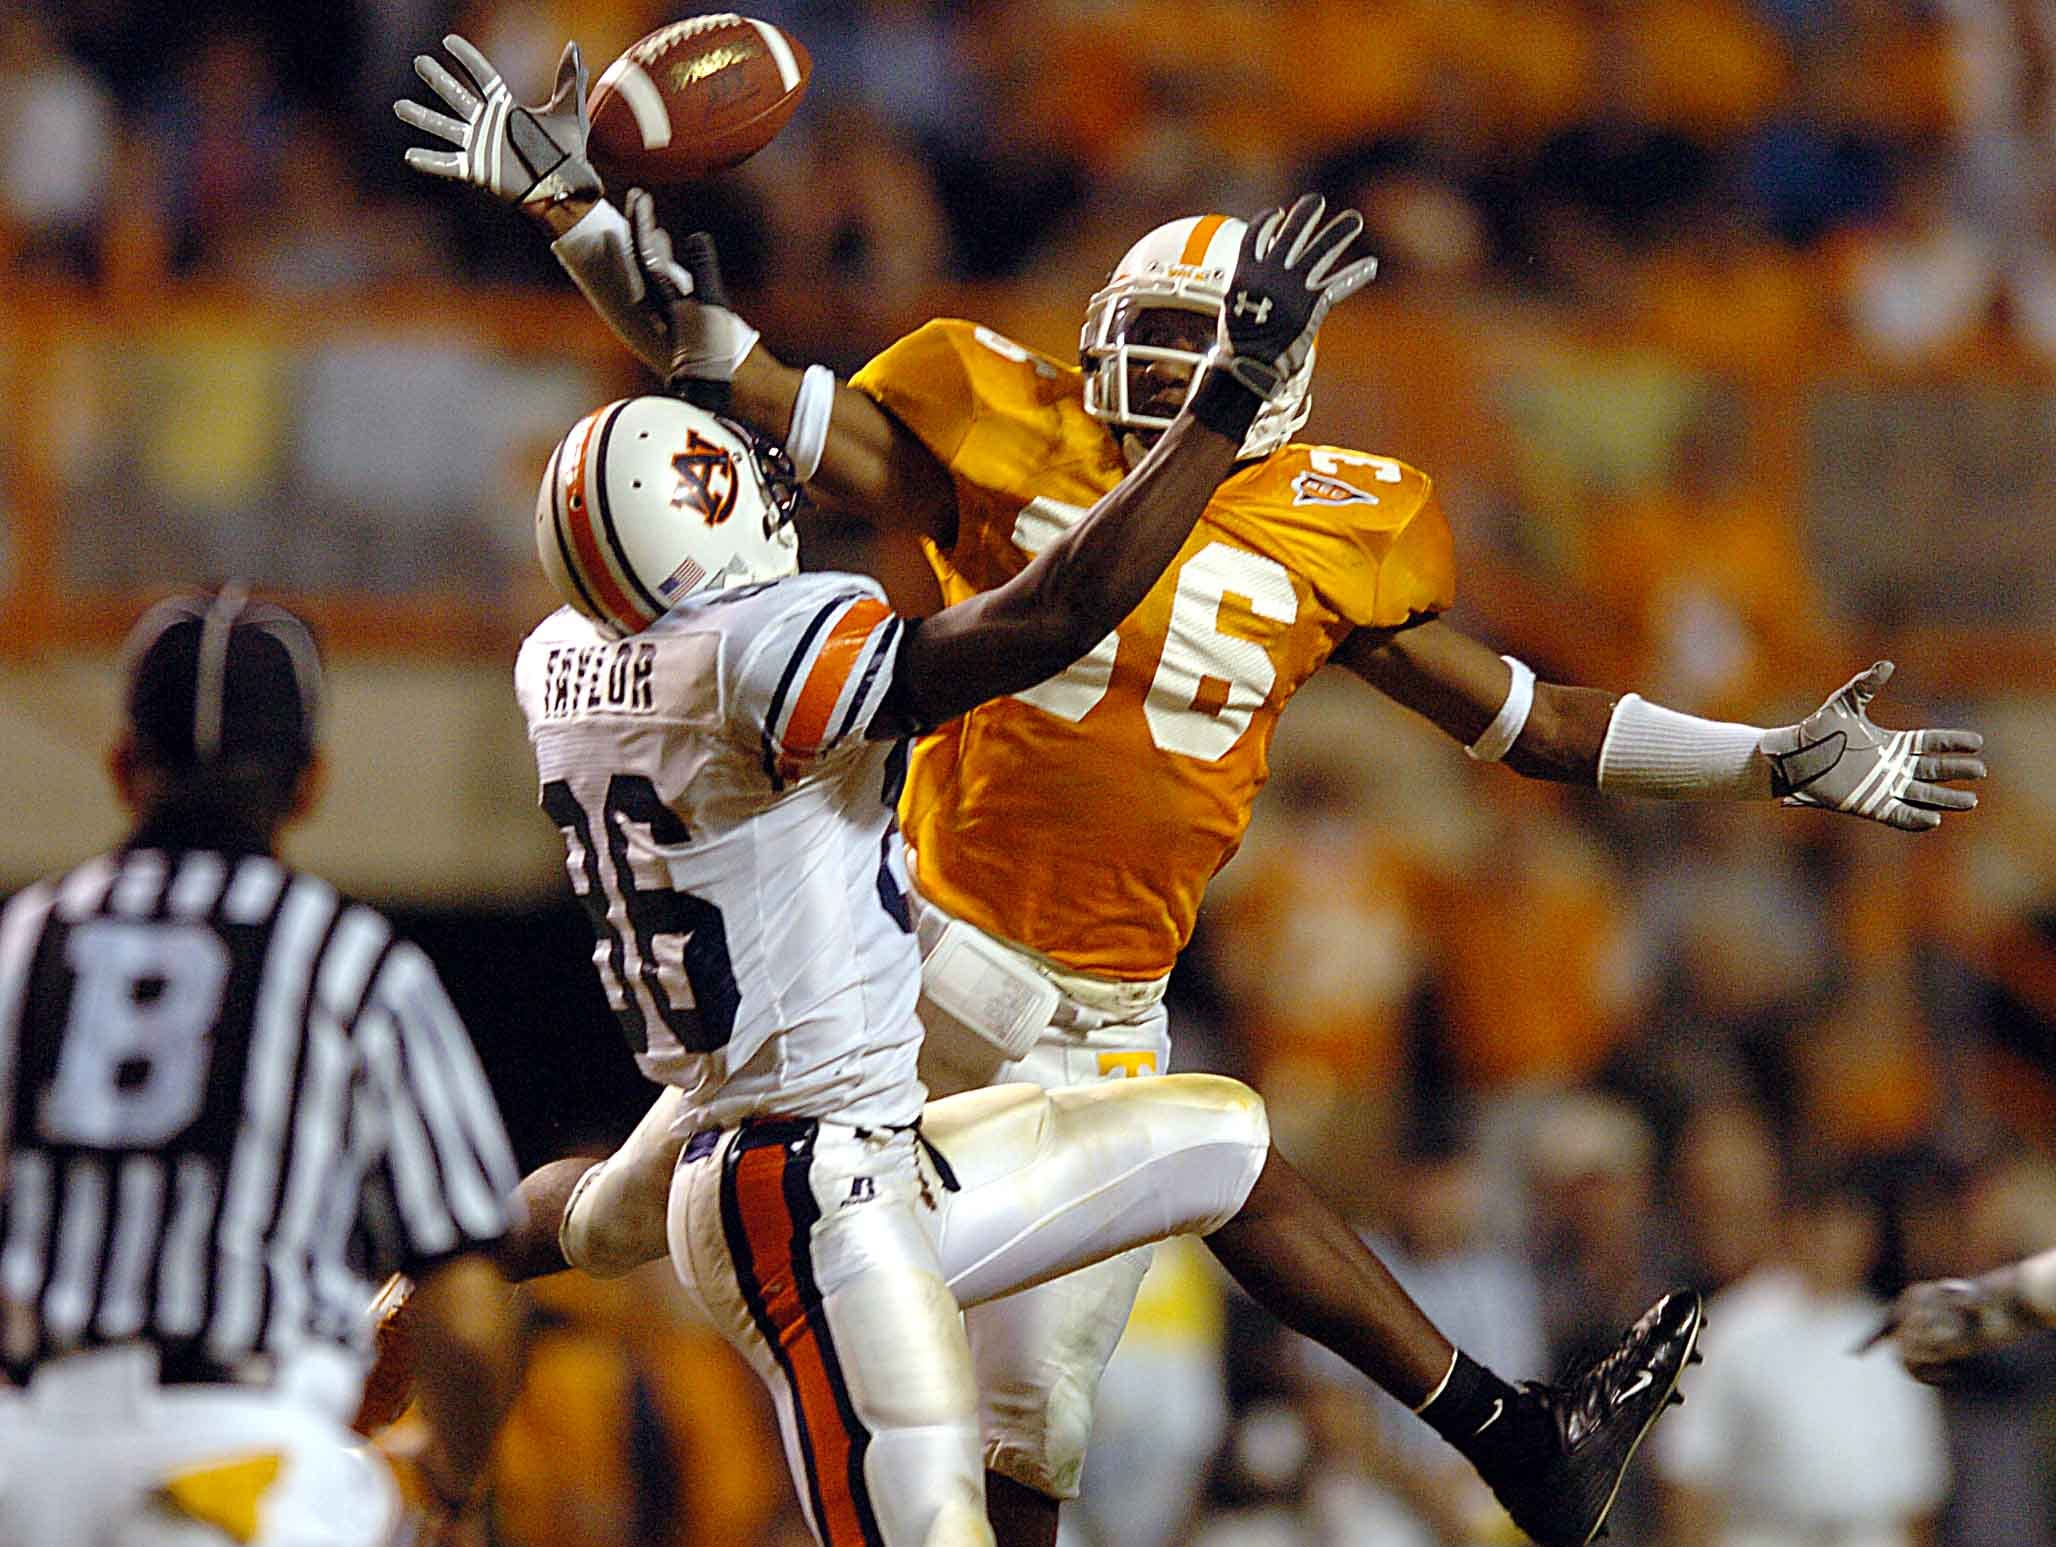 Tennessee's (36) Roshaun Fellows tips away a pass intended for Auburn's (86) Courtney Taylor during second half action Saturday night at Neyland Stadium in 2004. Auburn won the game 34-10.